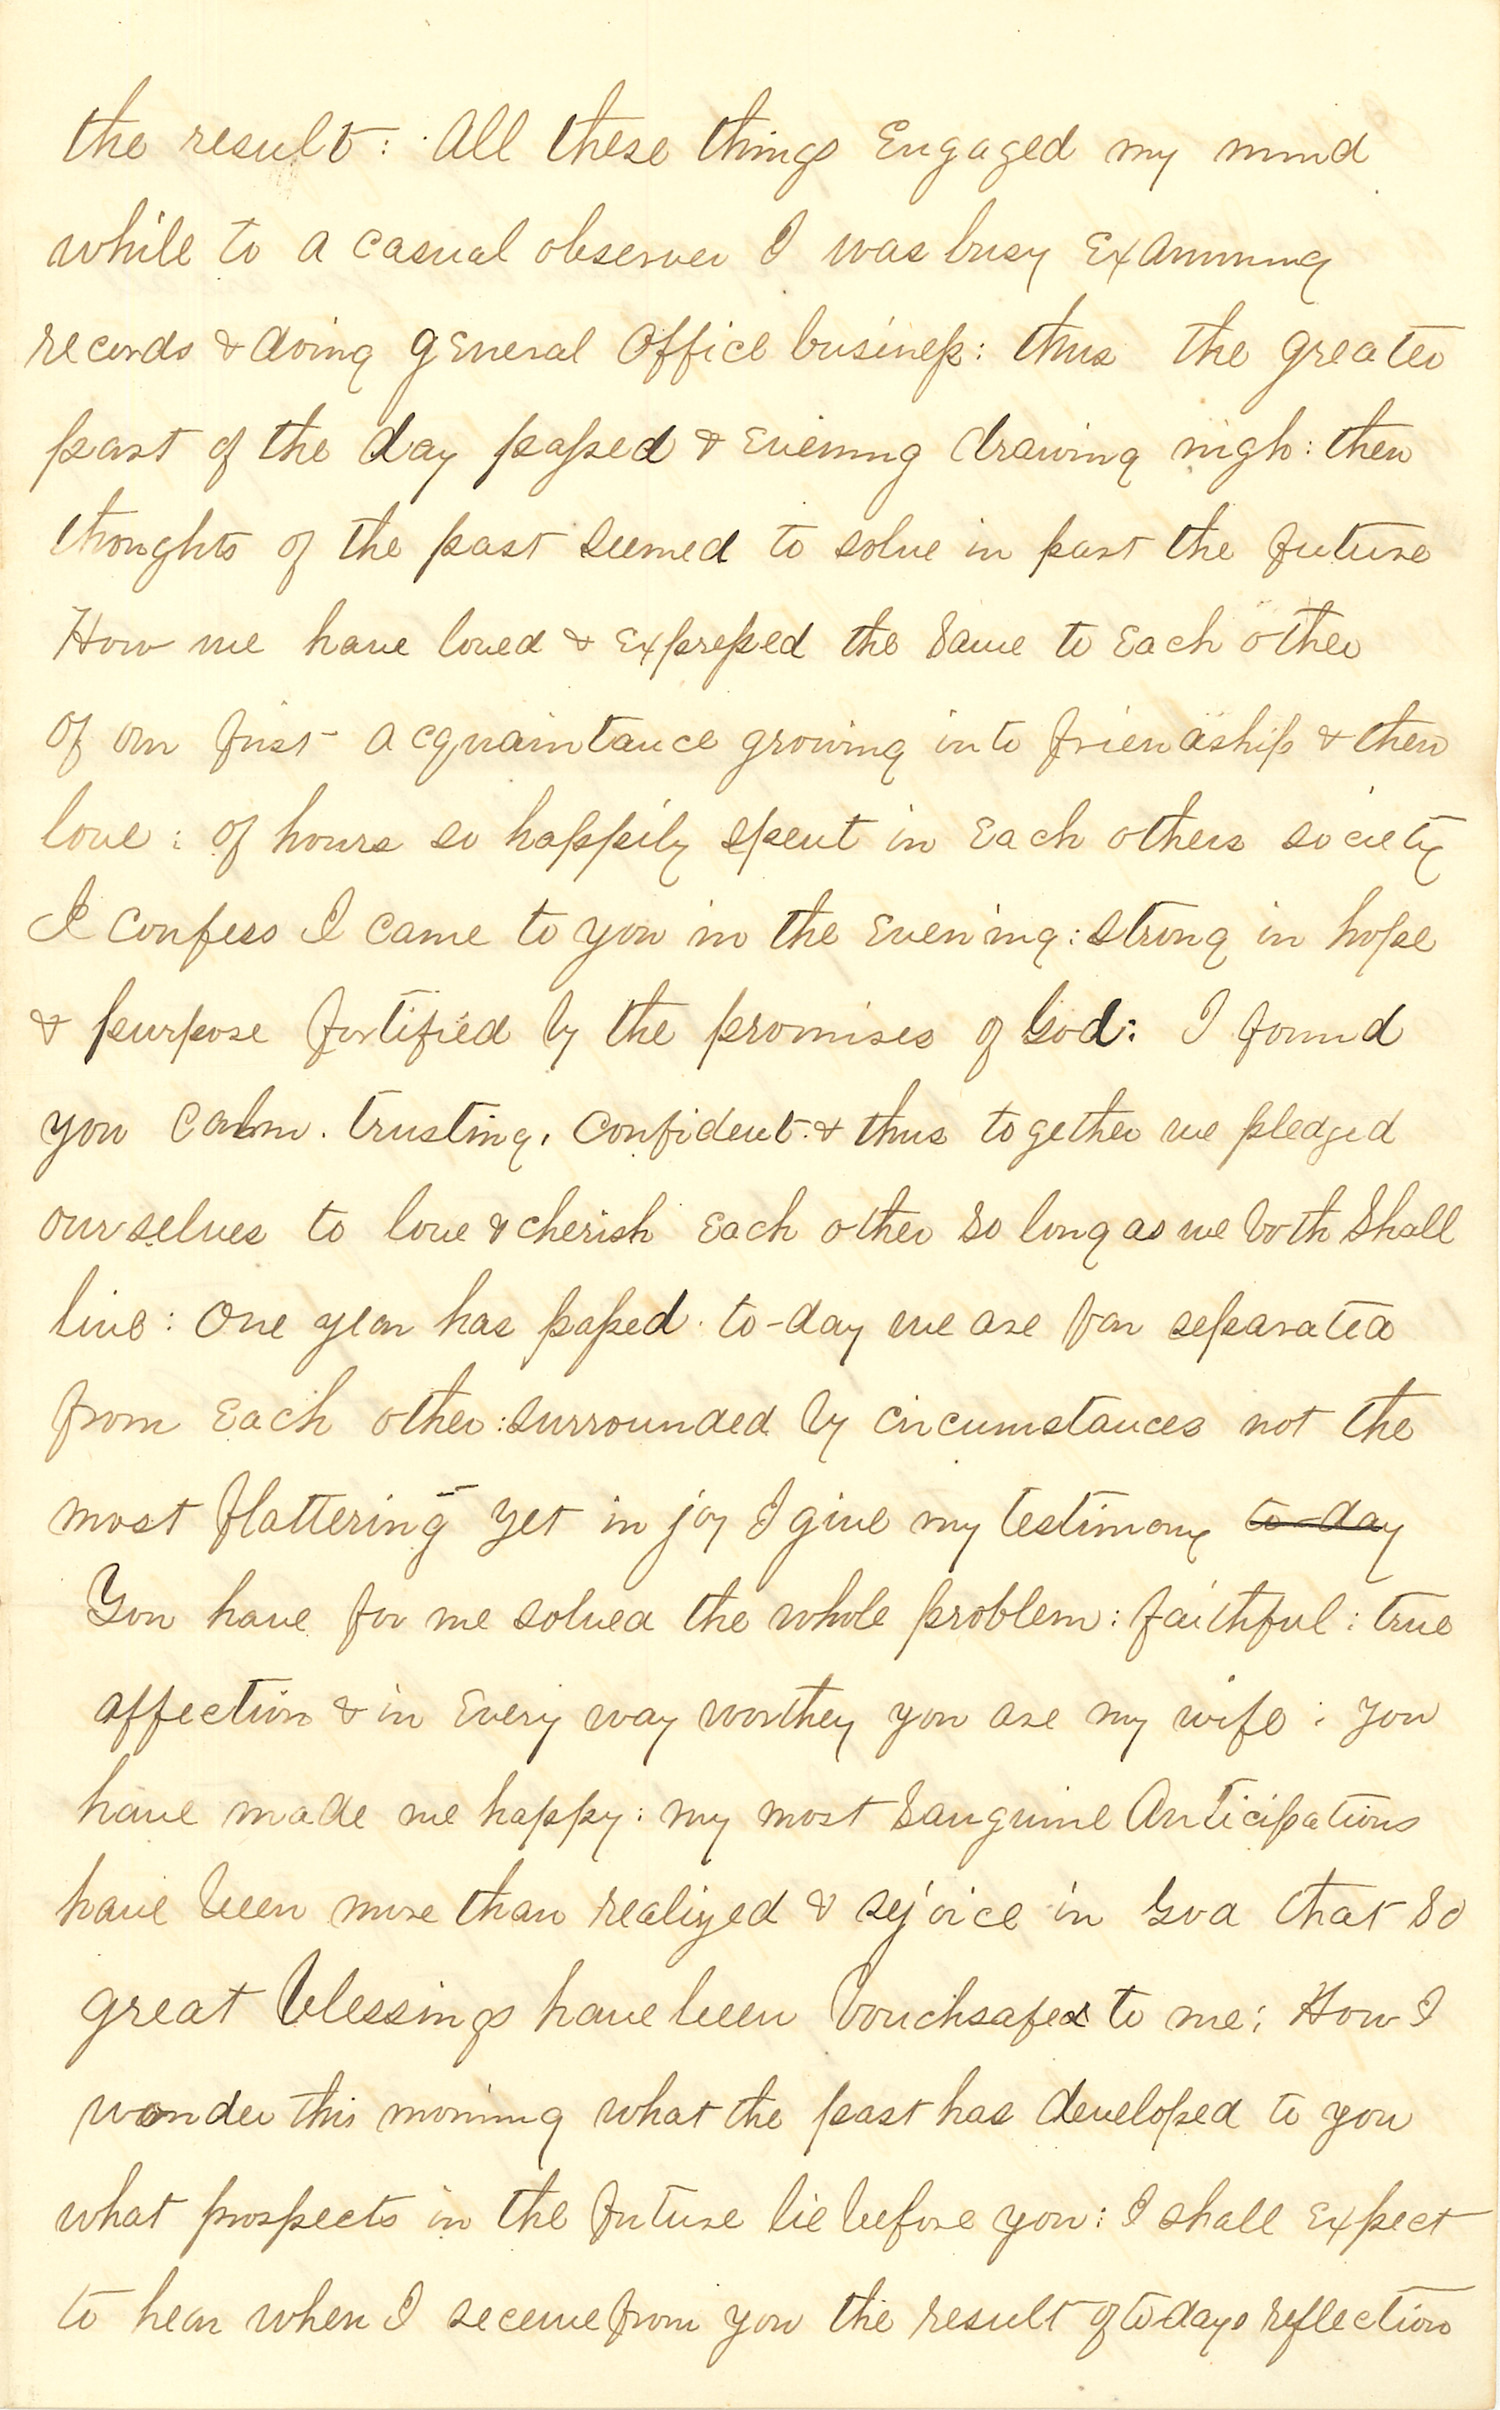 Joseph Culver Letter, December 12, 1862, Page 3